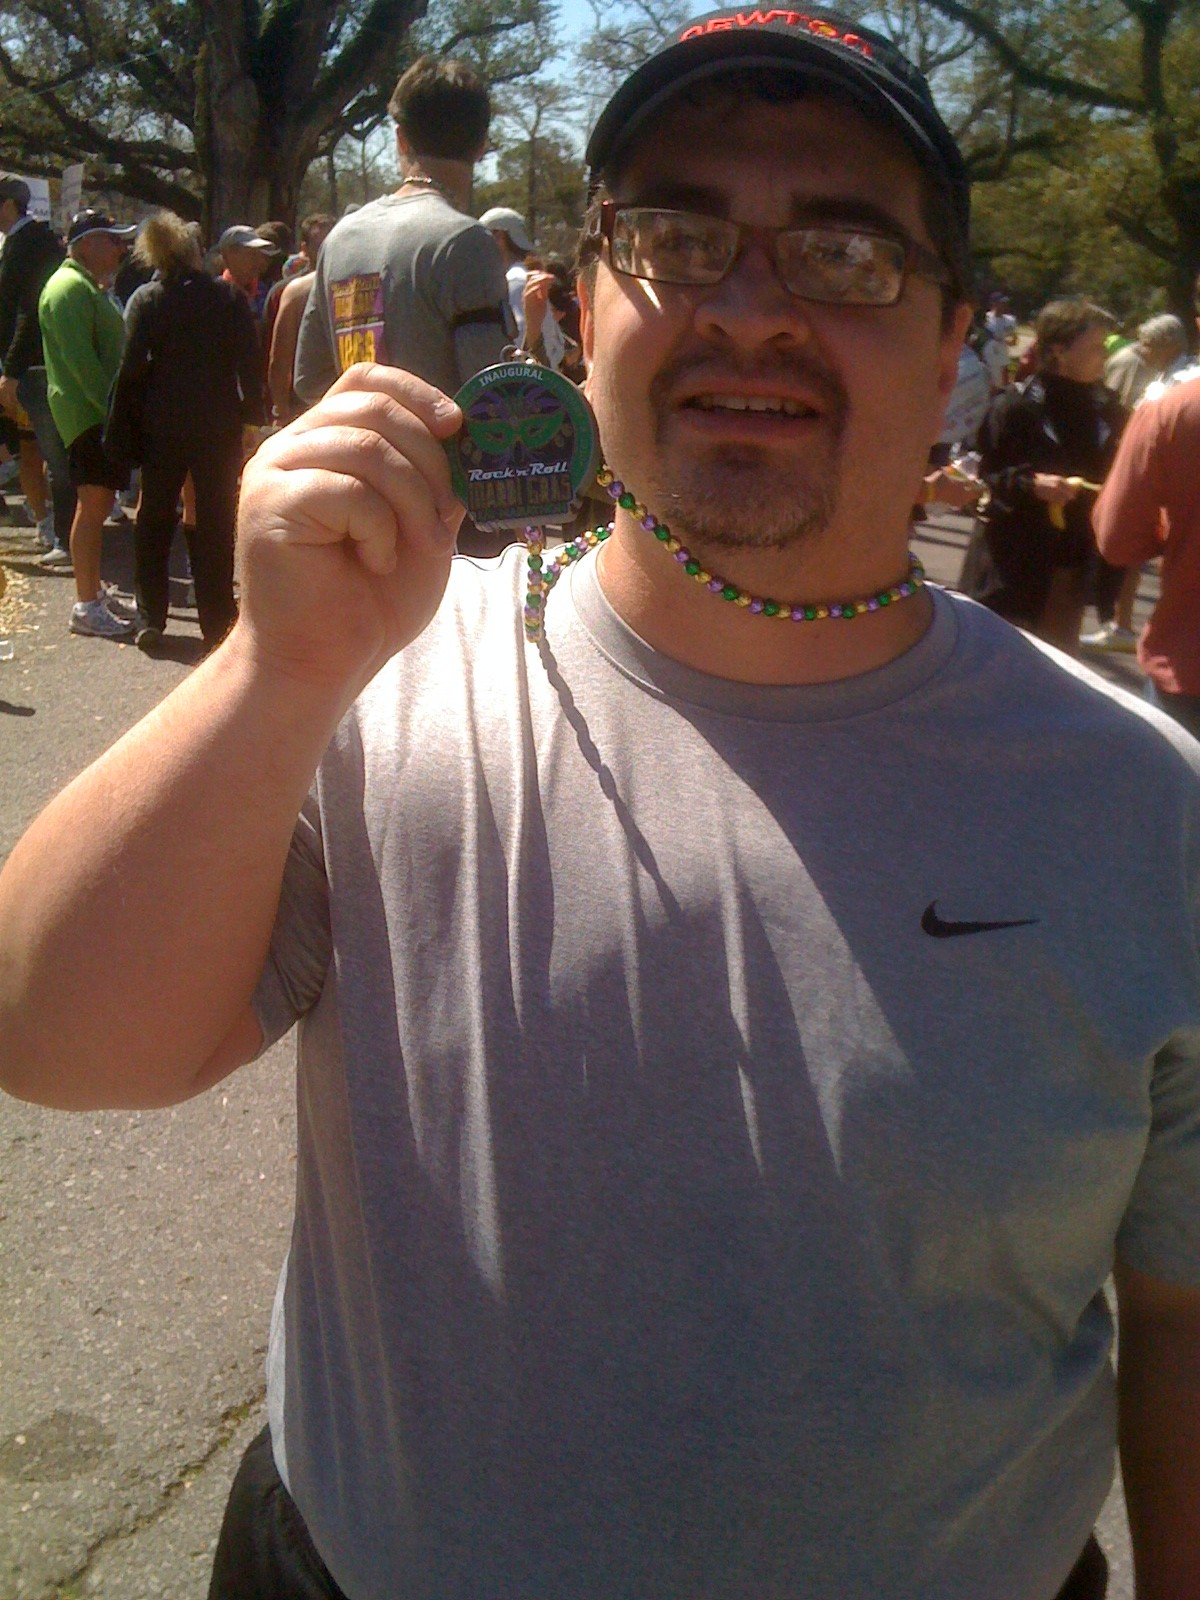 Scott finishes the 2010 Rock and Roll Mardi Gras Half Marathon.